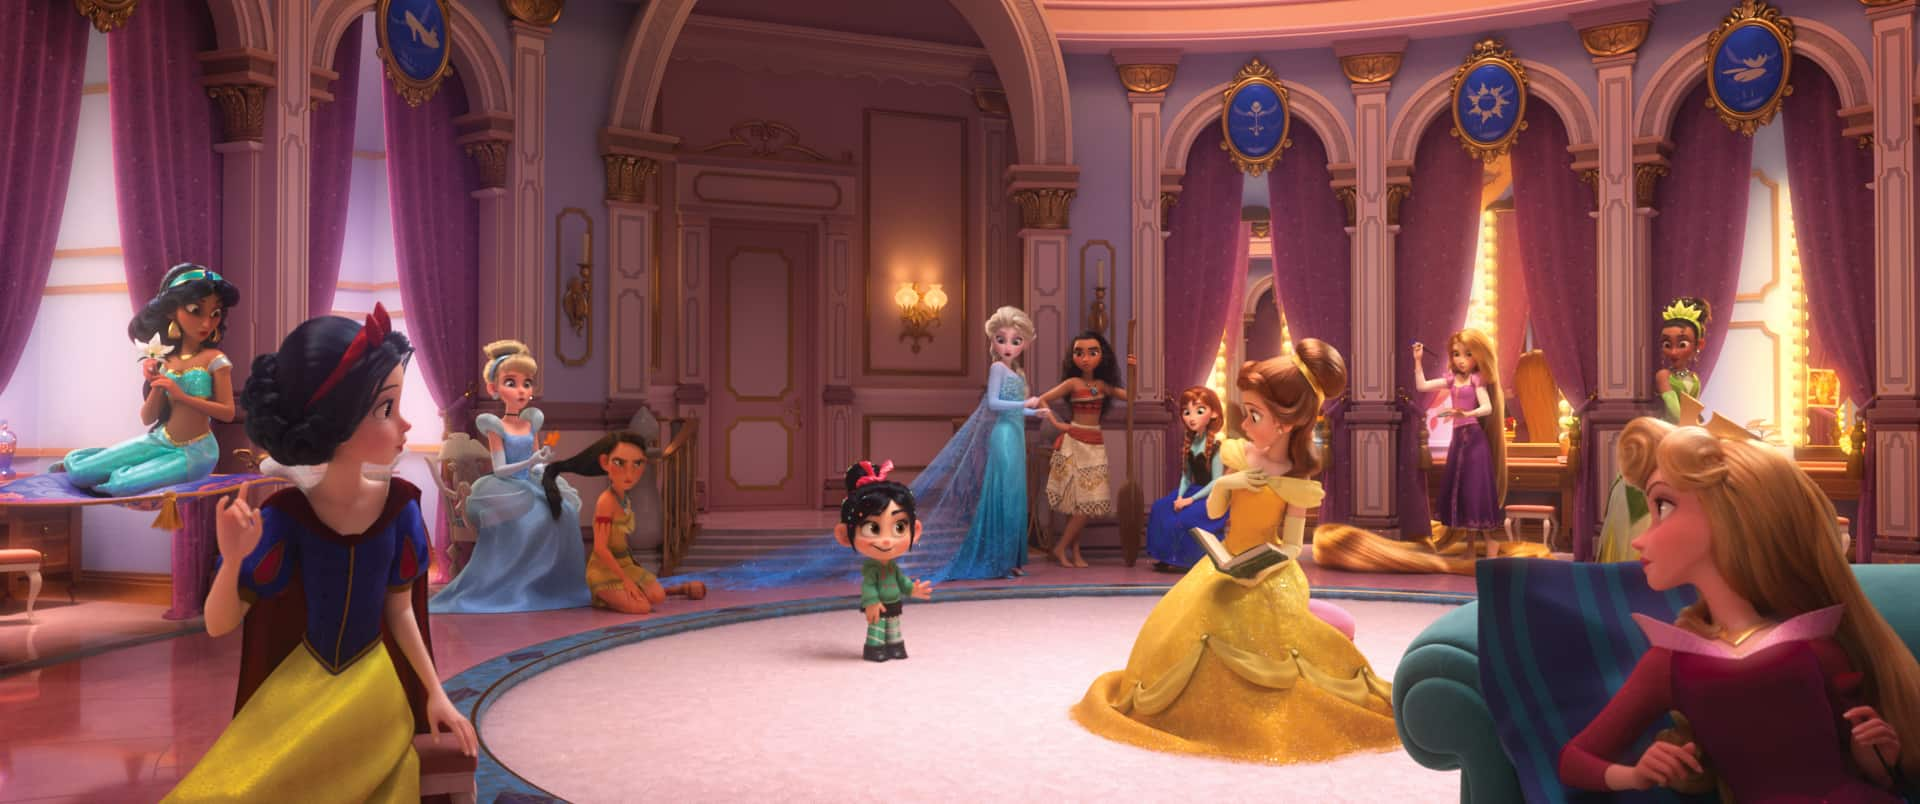 Voice of Snow White, Pamela Ribon, and the princess scene in Ralph Breaks the Internet